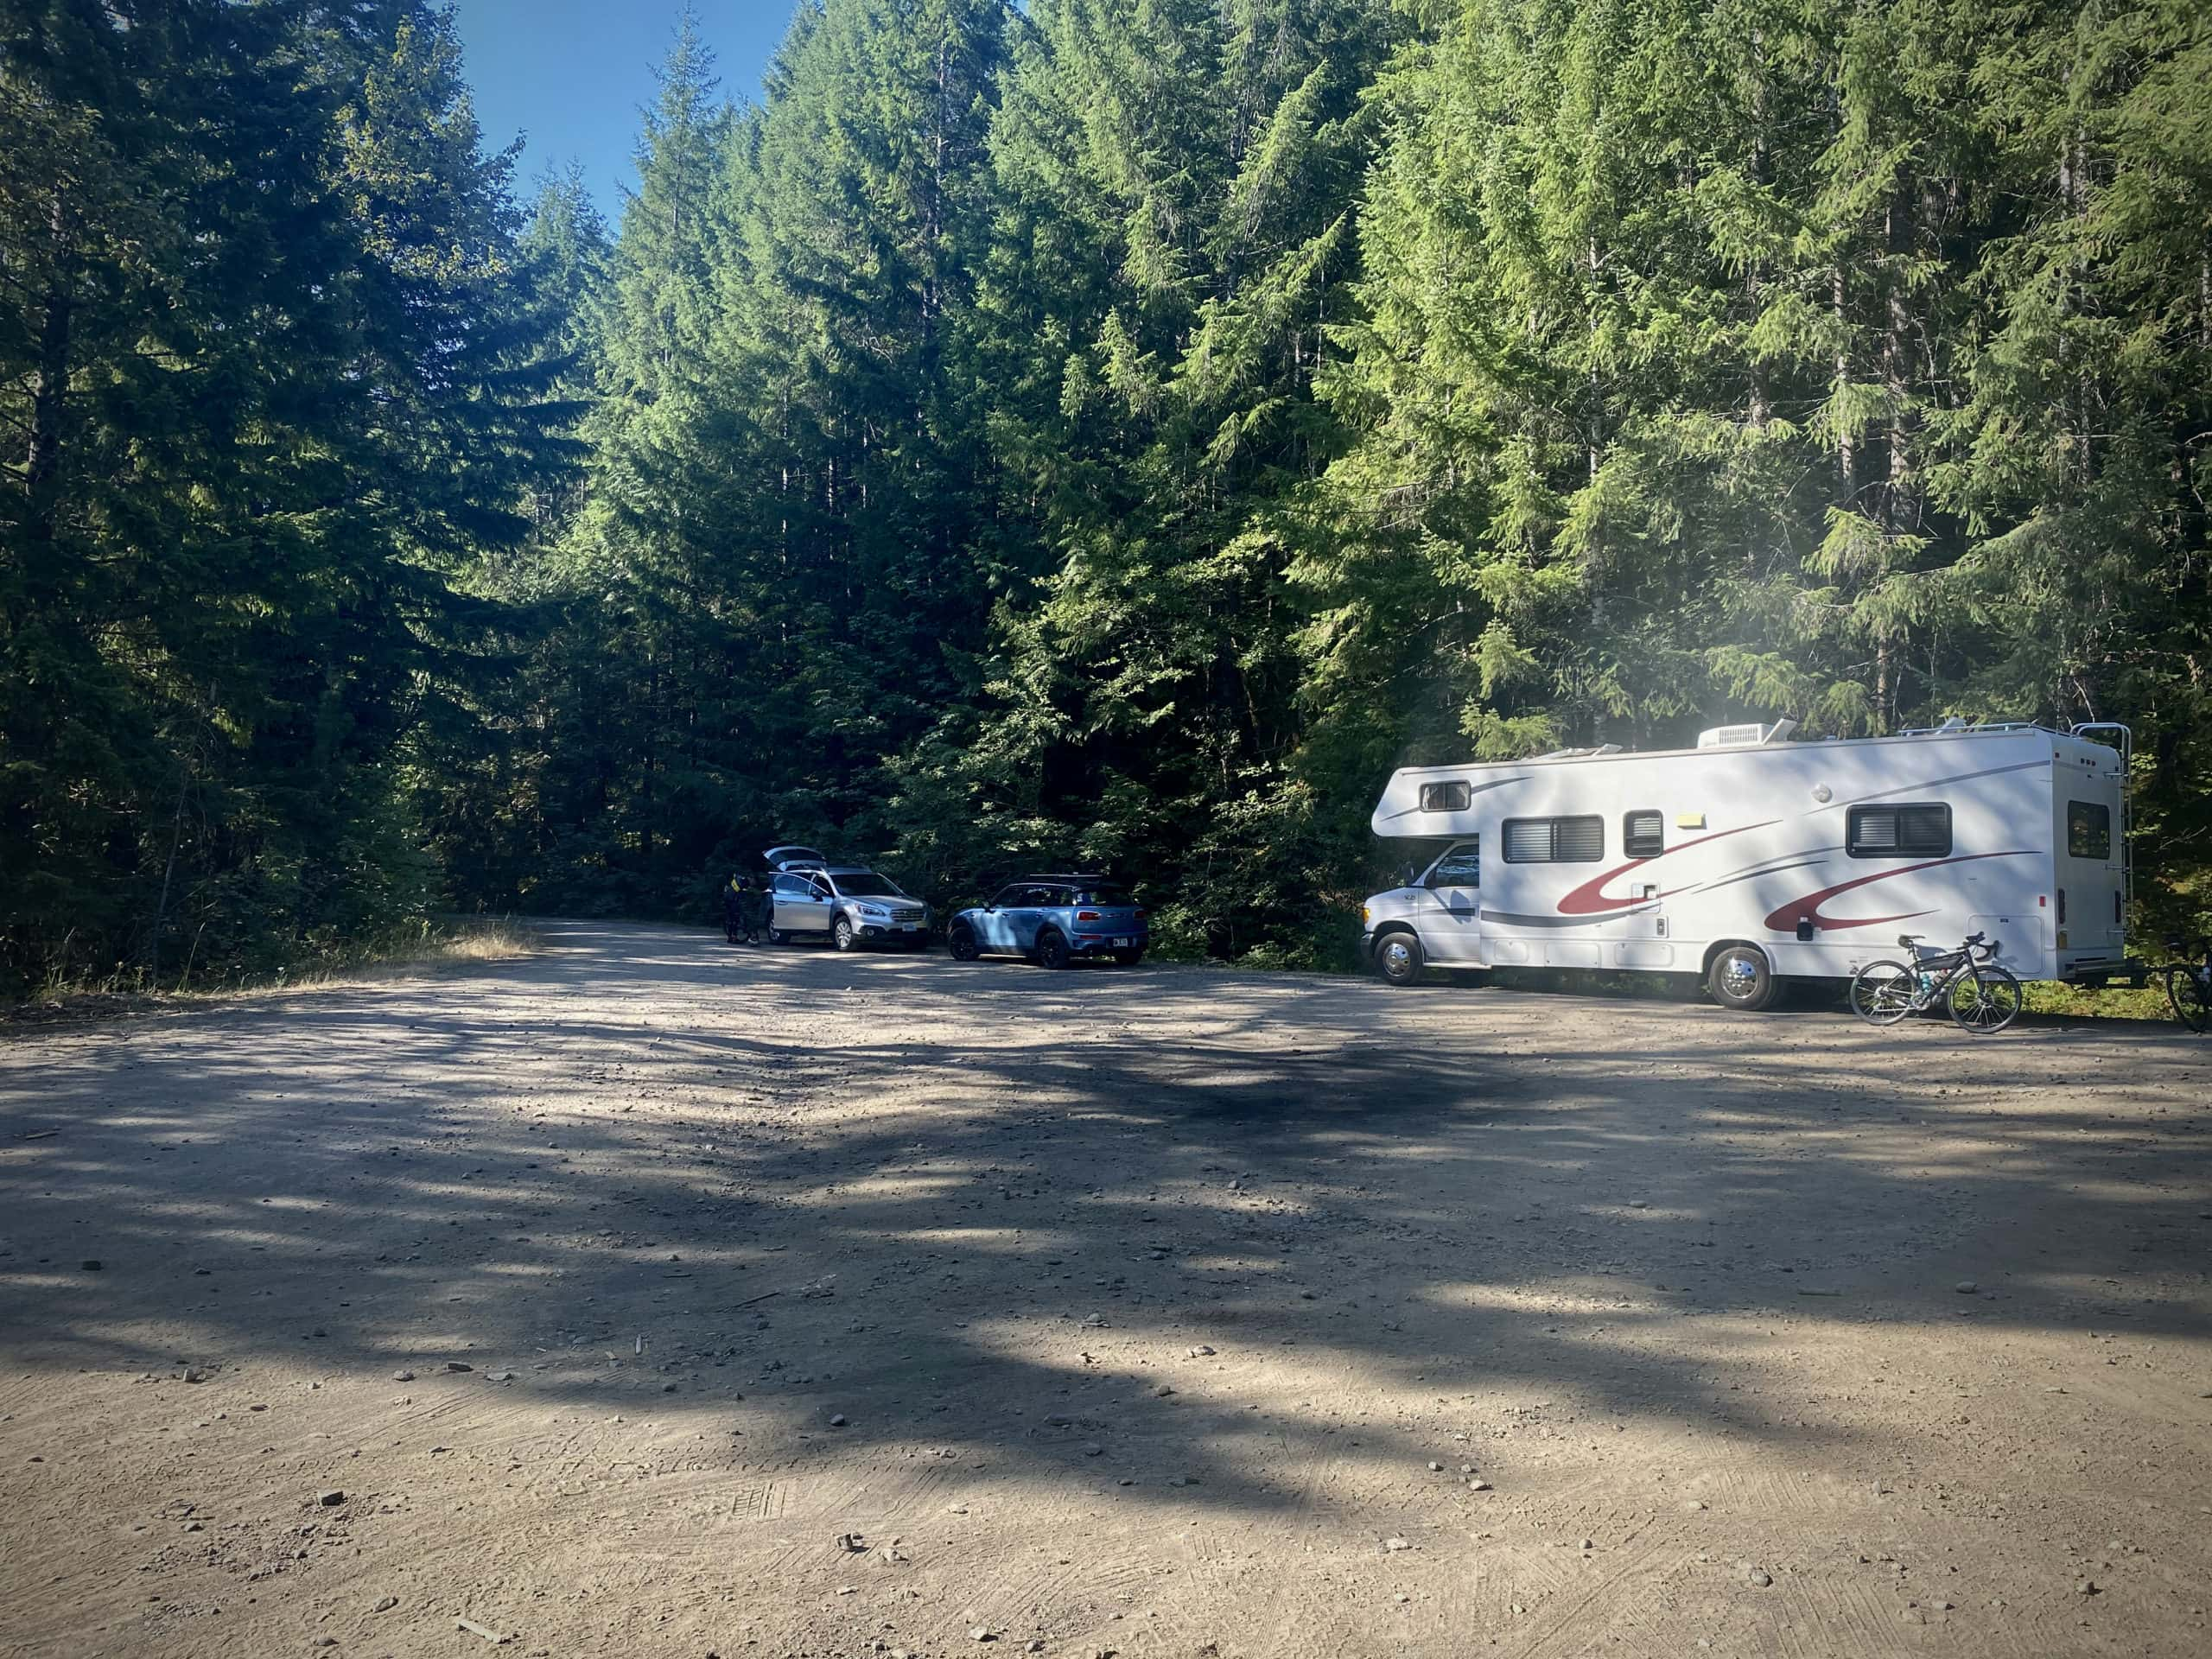 The parking area for the Dirty Freehub route Cool & Shady near Oakridge, Oregon.